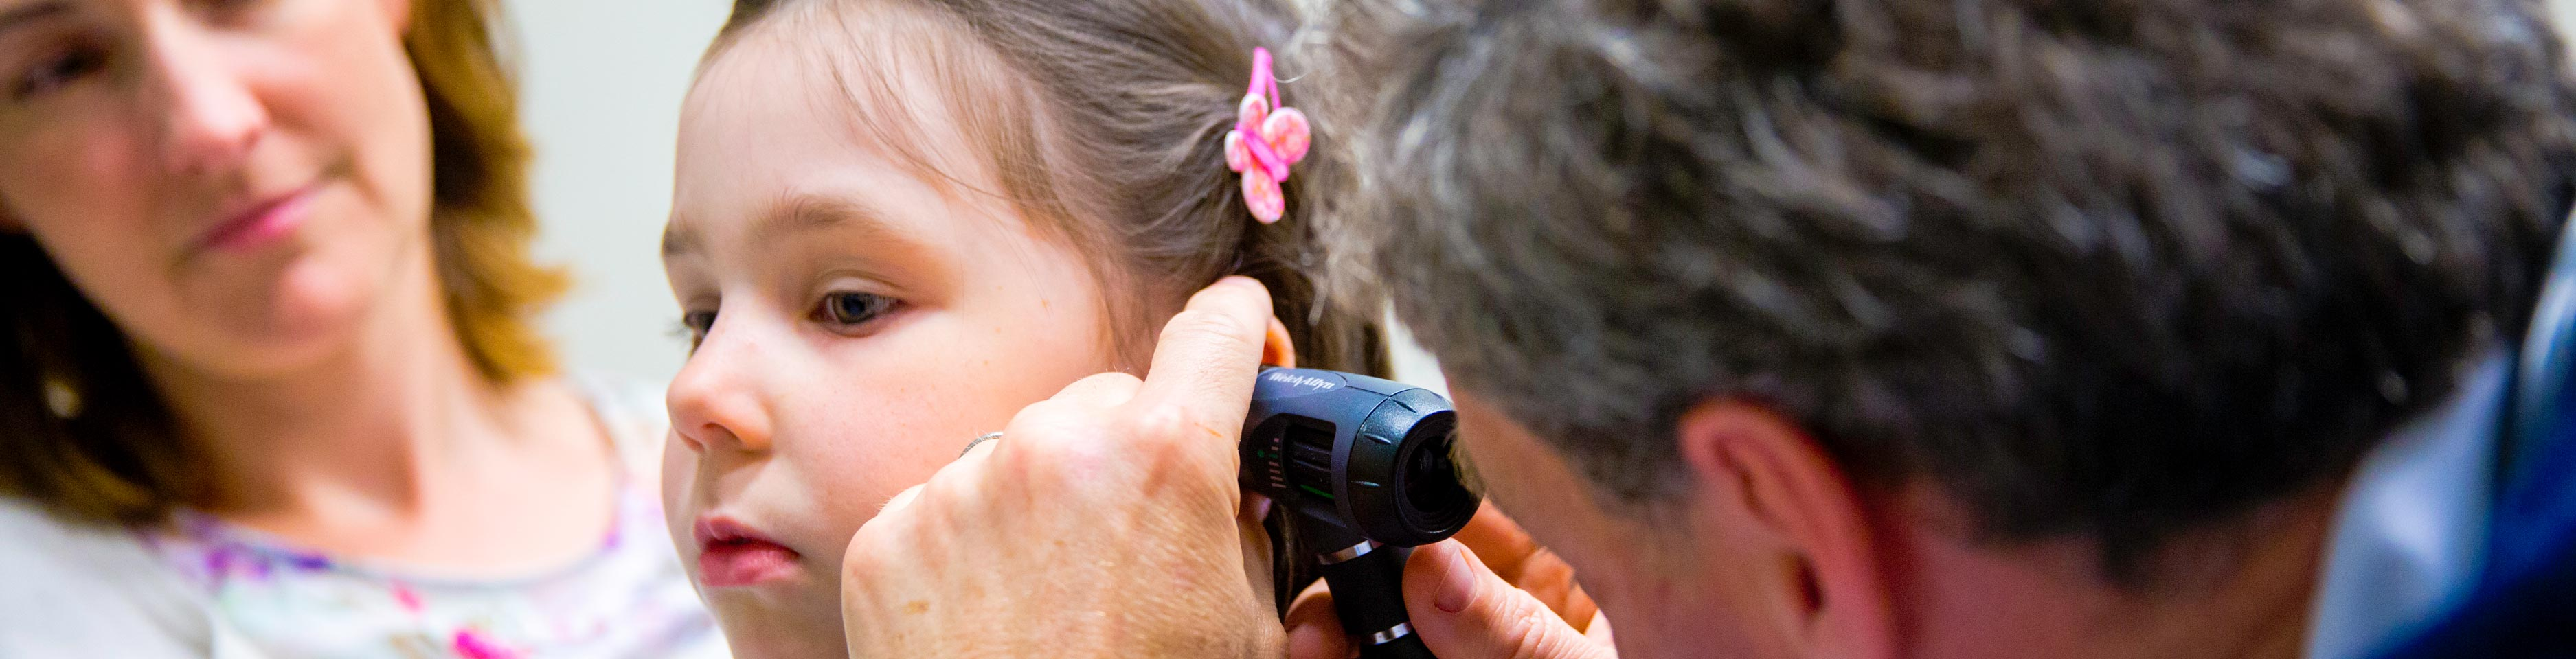 Doctor does an ear test on a young patient